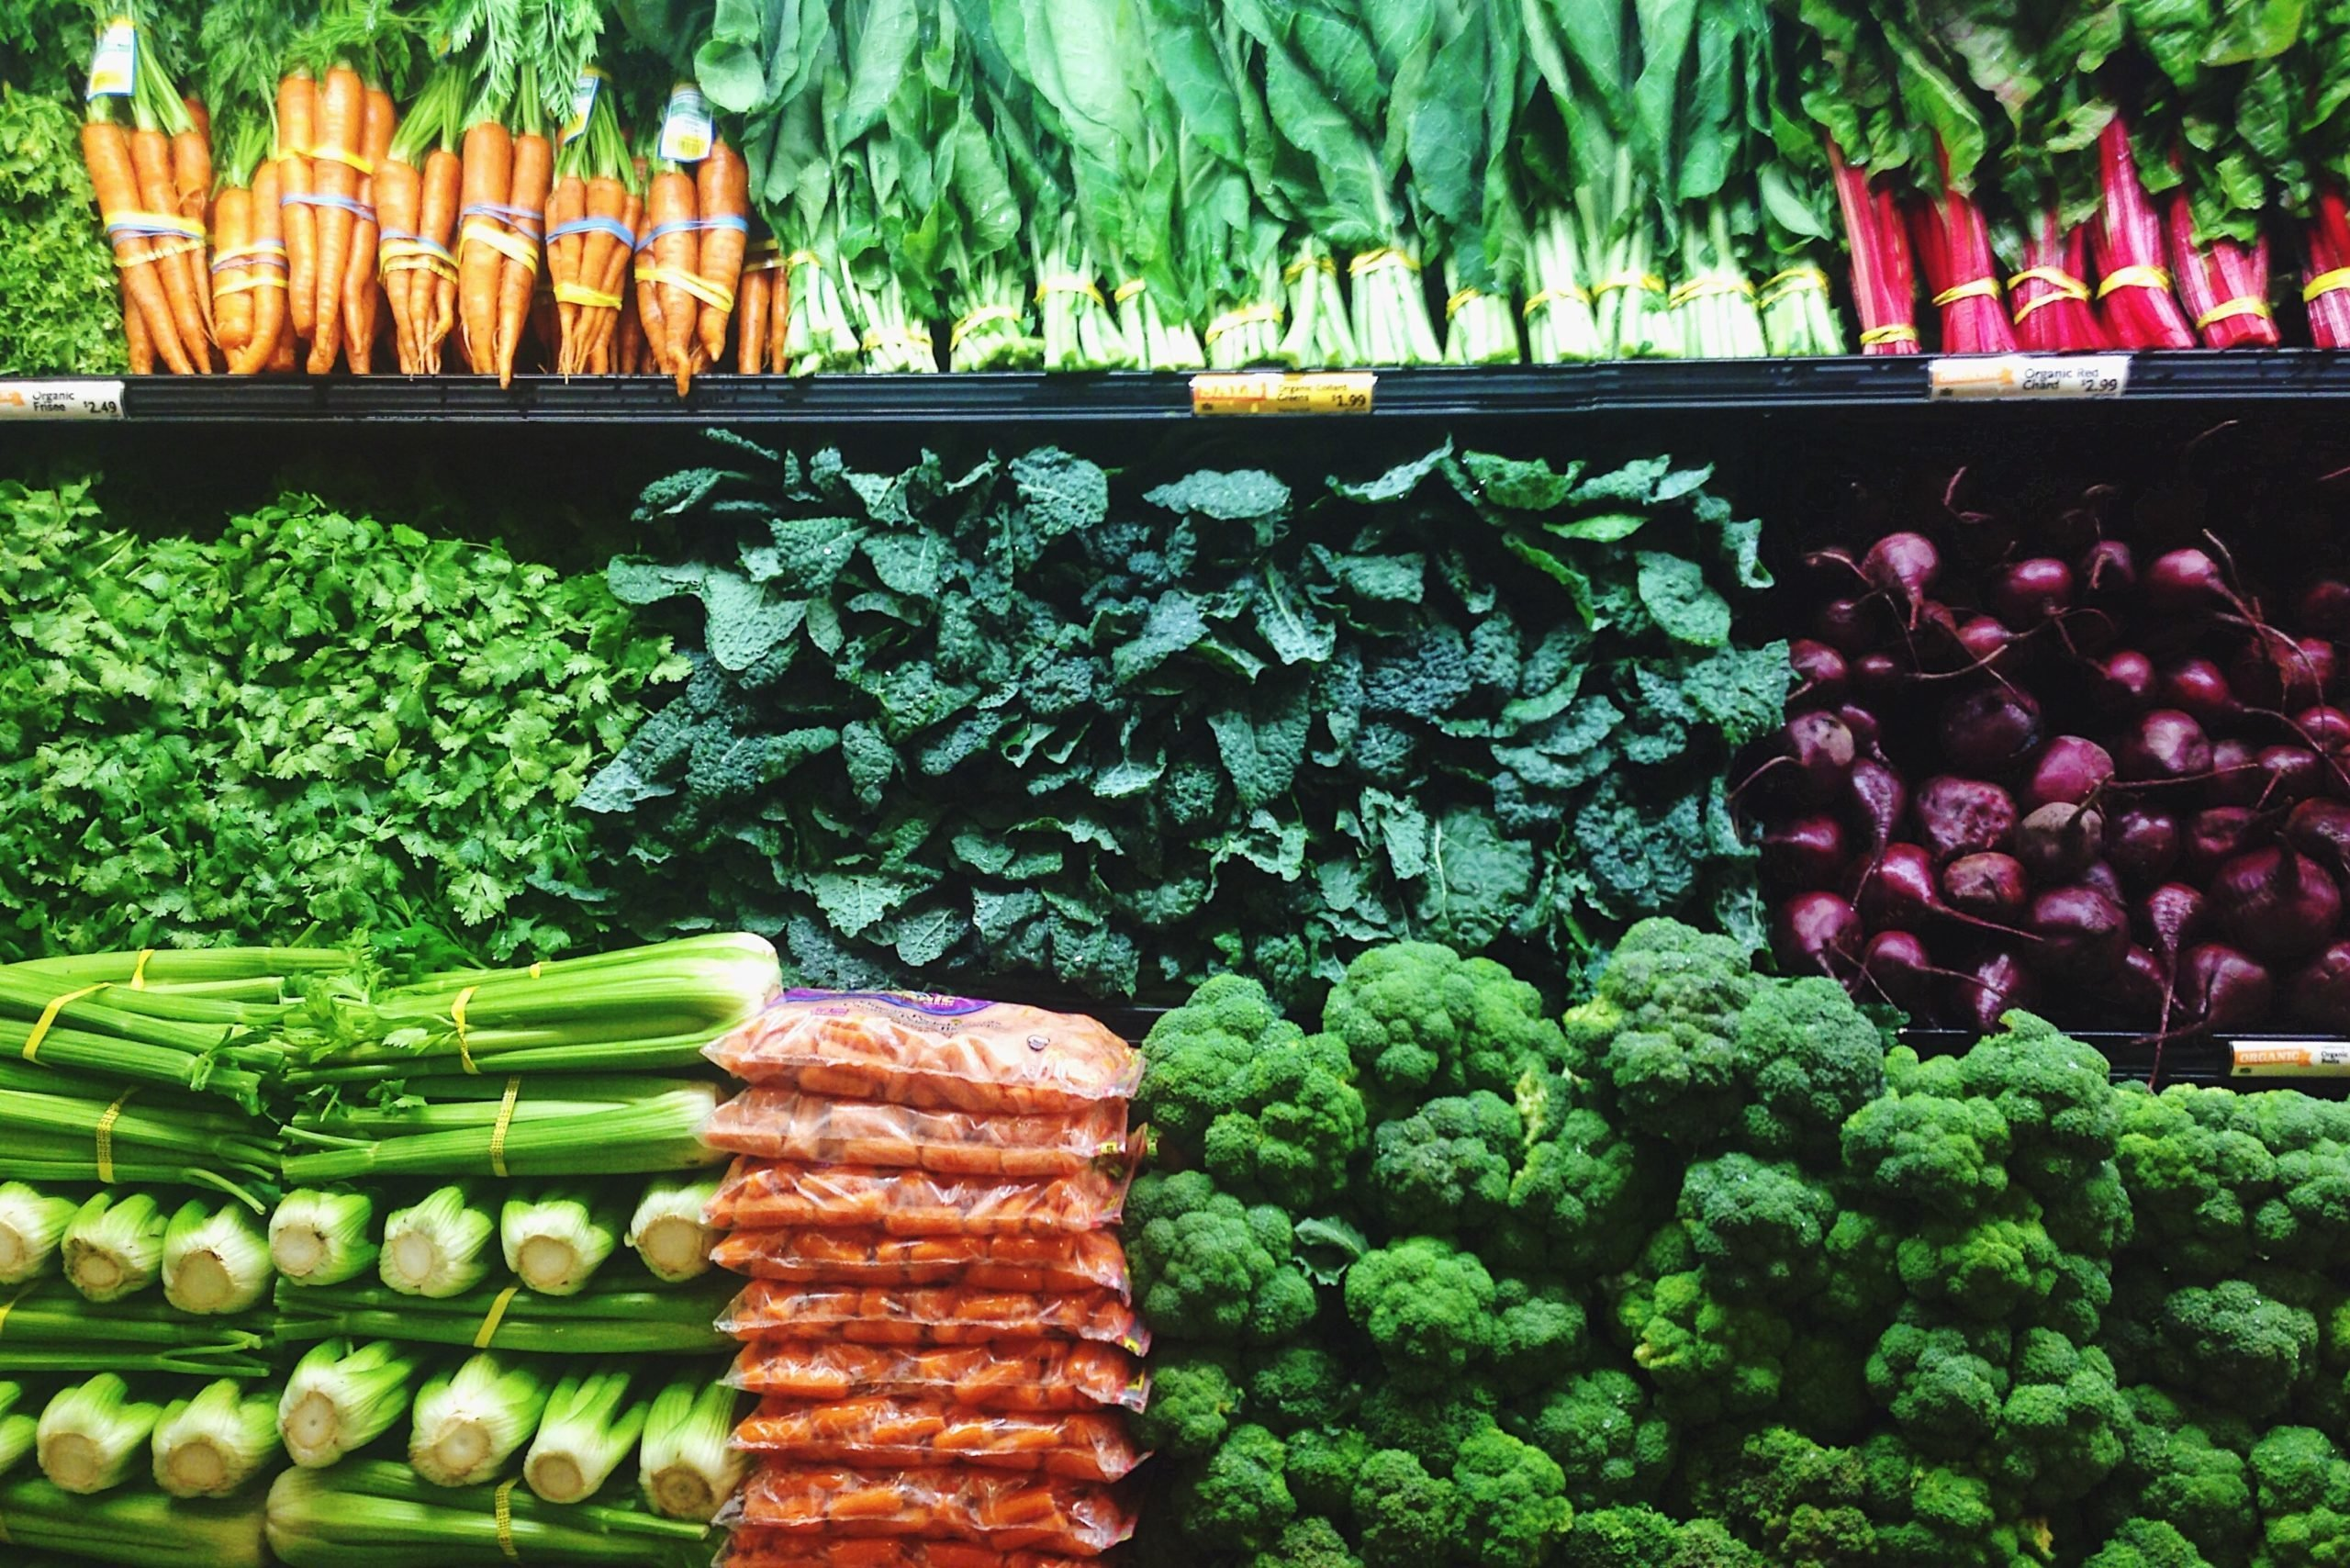 produce and vegetable in a grocery store